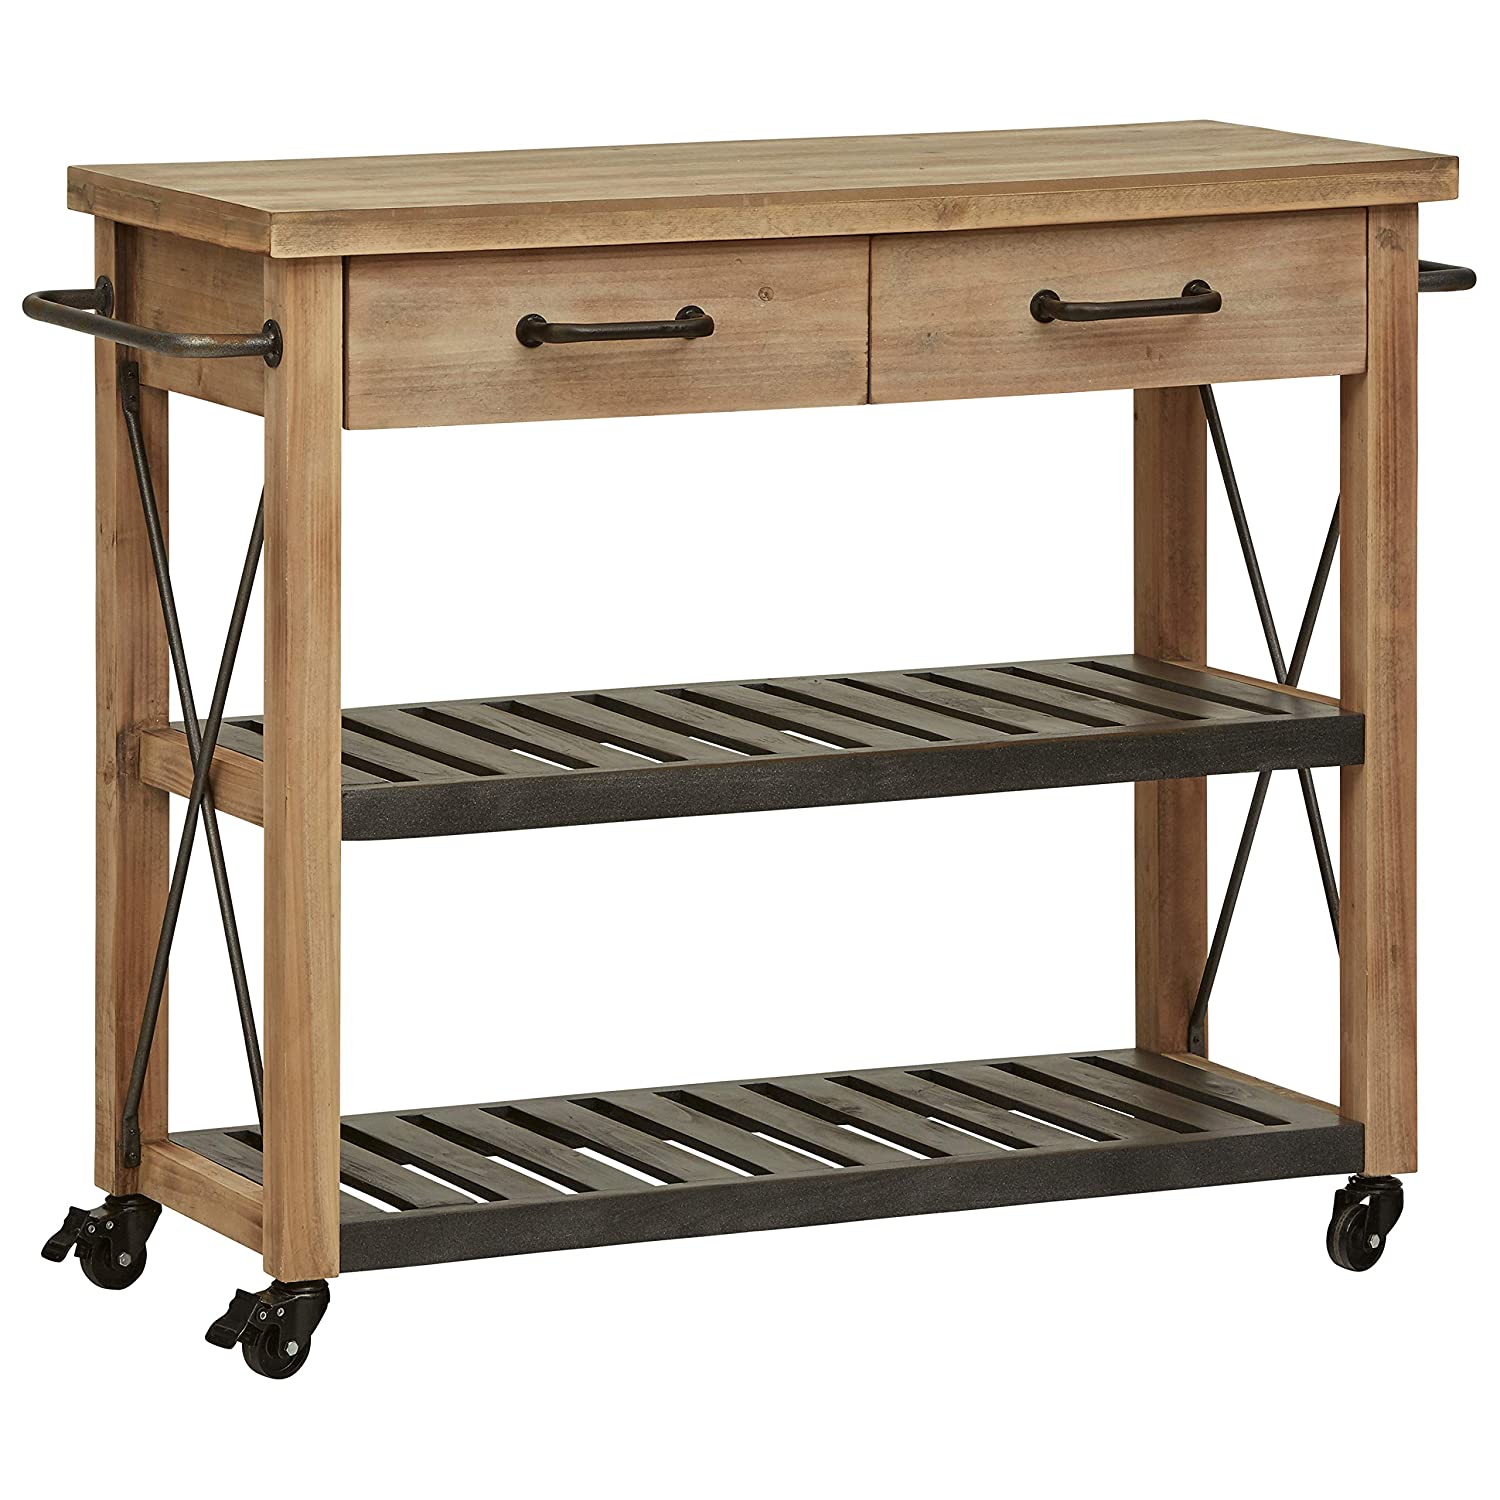 Natural Wood Finish Stone Beam Rustic Kitchen Island Butcher Block Buffet Cart With Wheels Home Kitchen Zuiverlucht Kitchen Dining Room Furniture